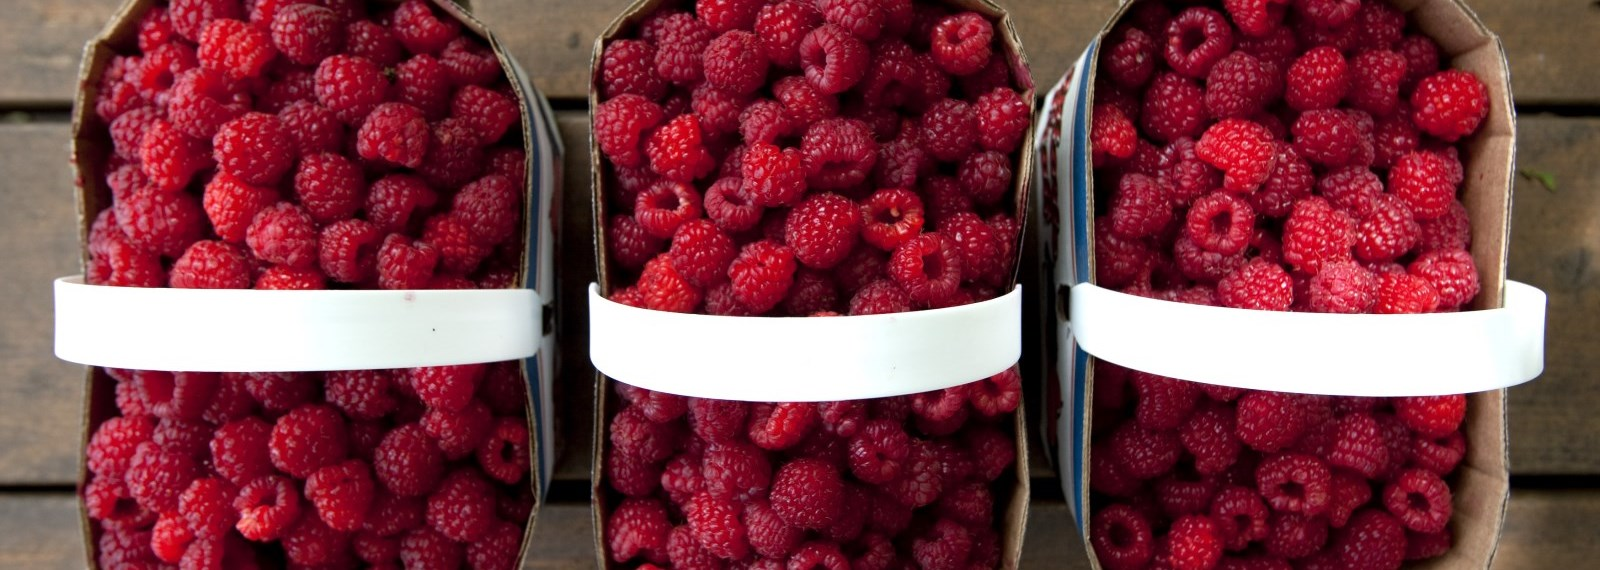 three baskets of raspberries